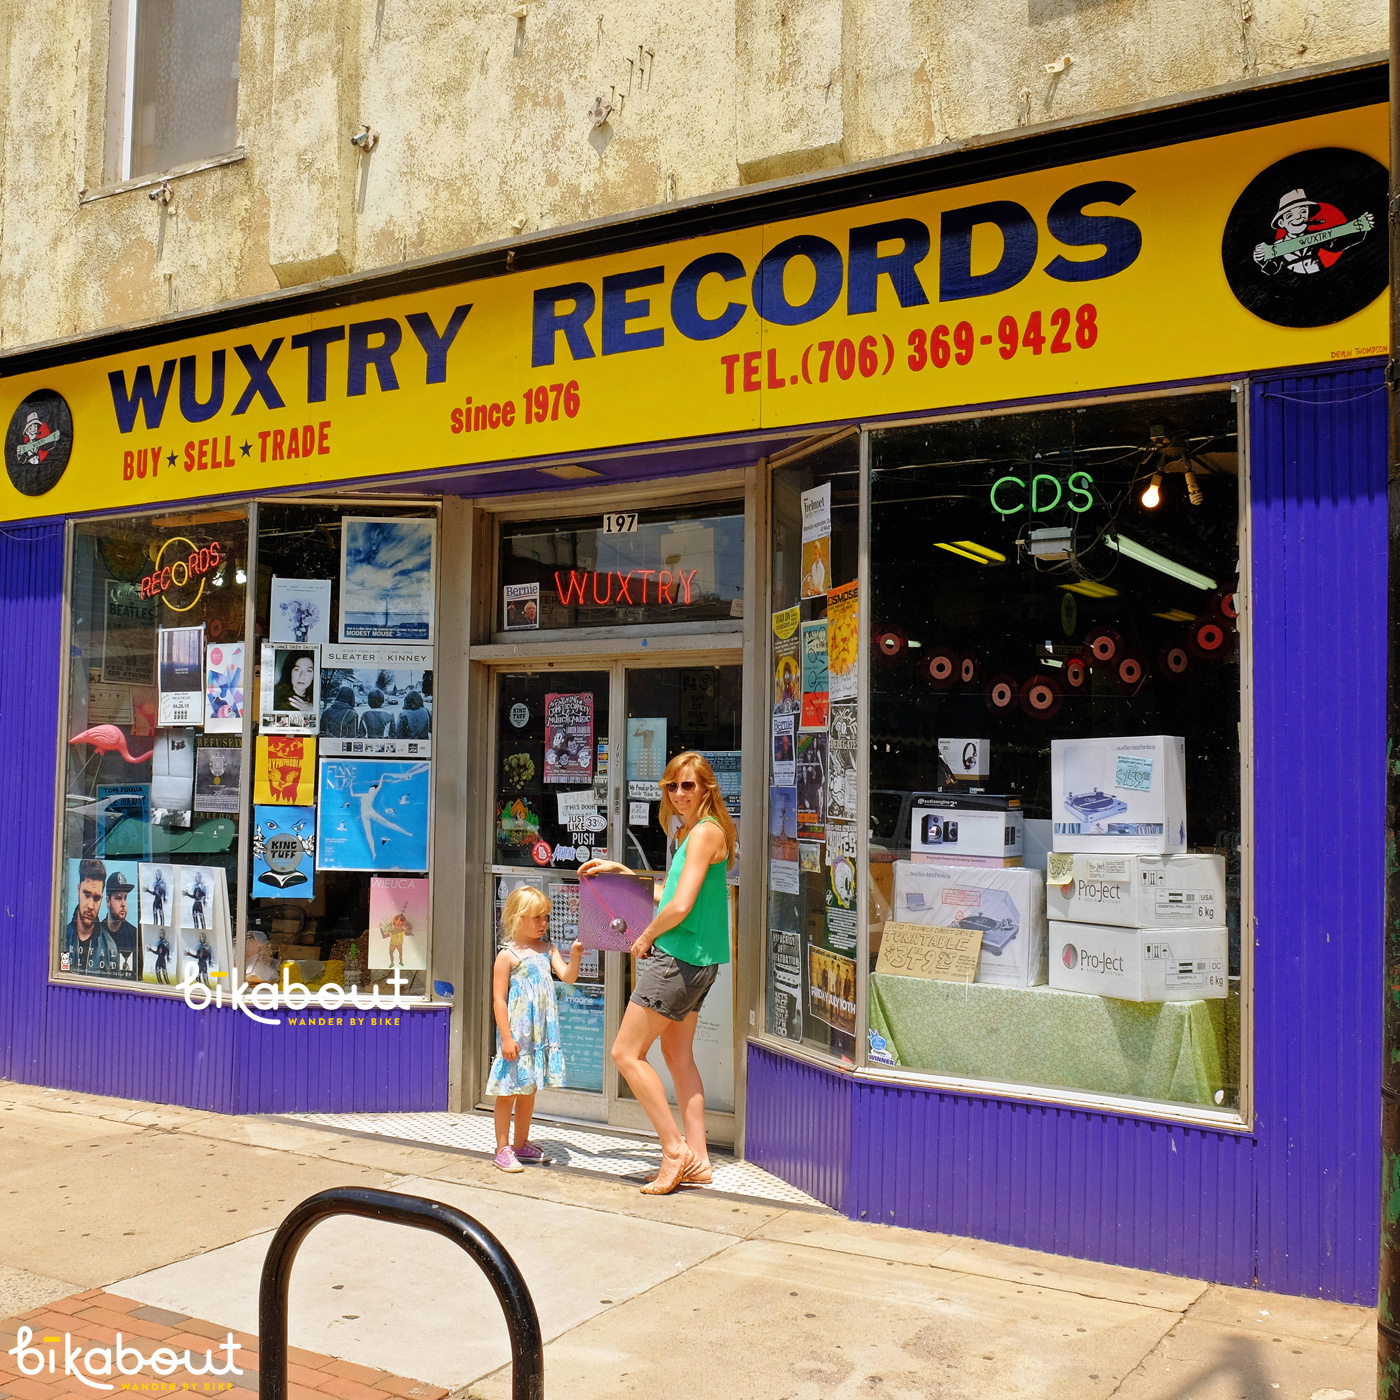 Wuxtry Records, Athens